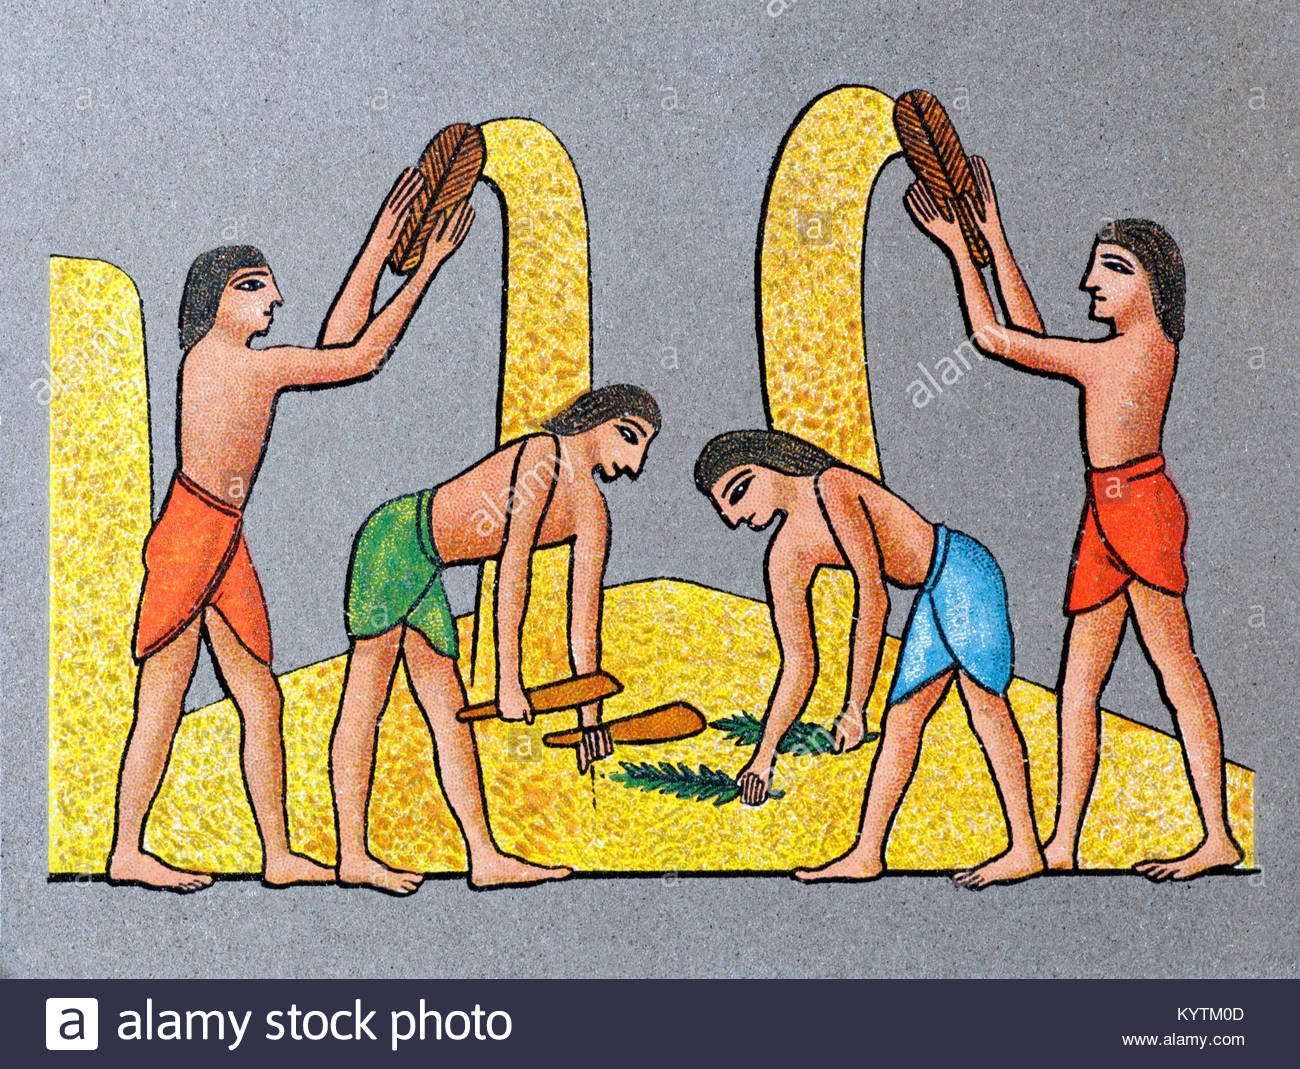 Depiction of ancient Egyptians winnowing corn - Stock Image